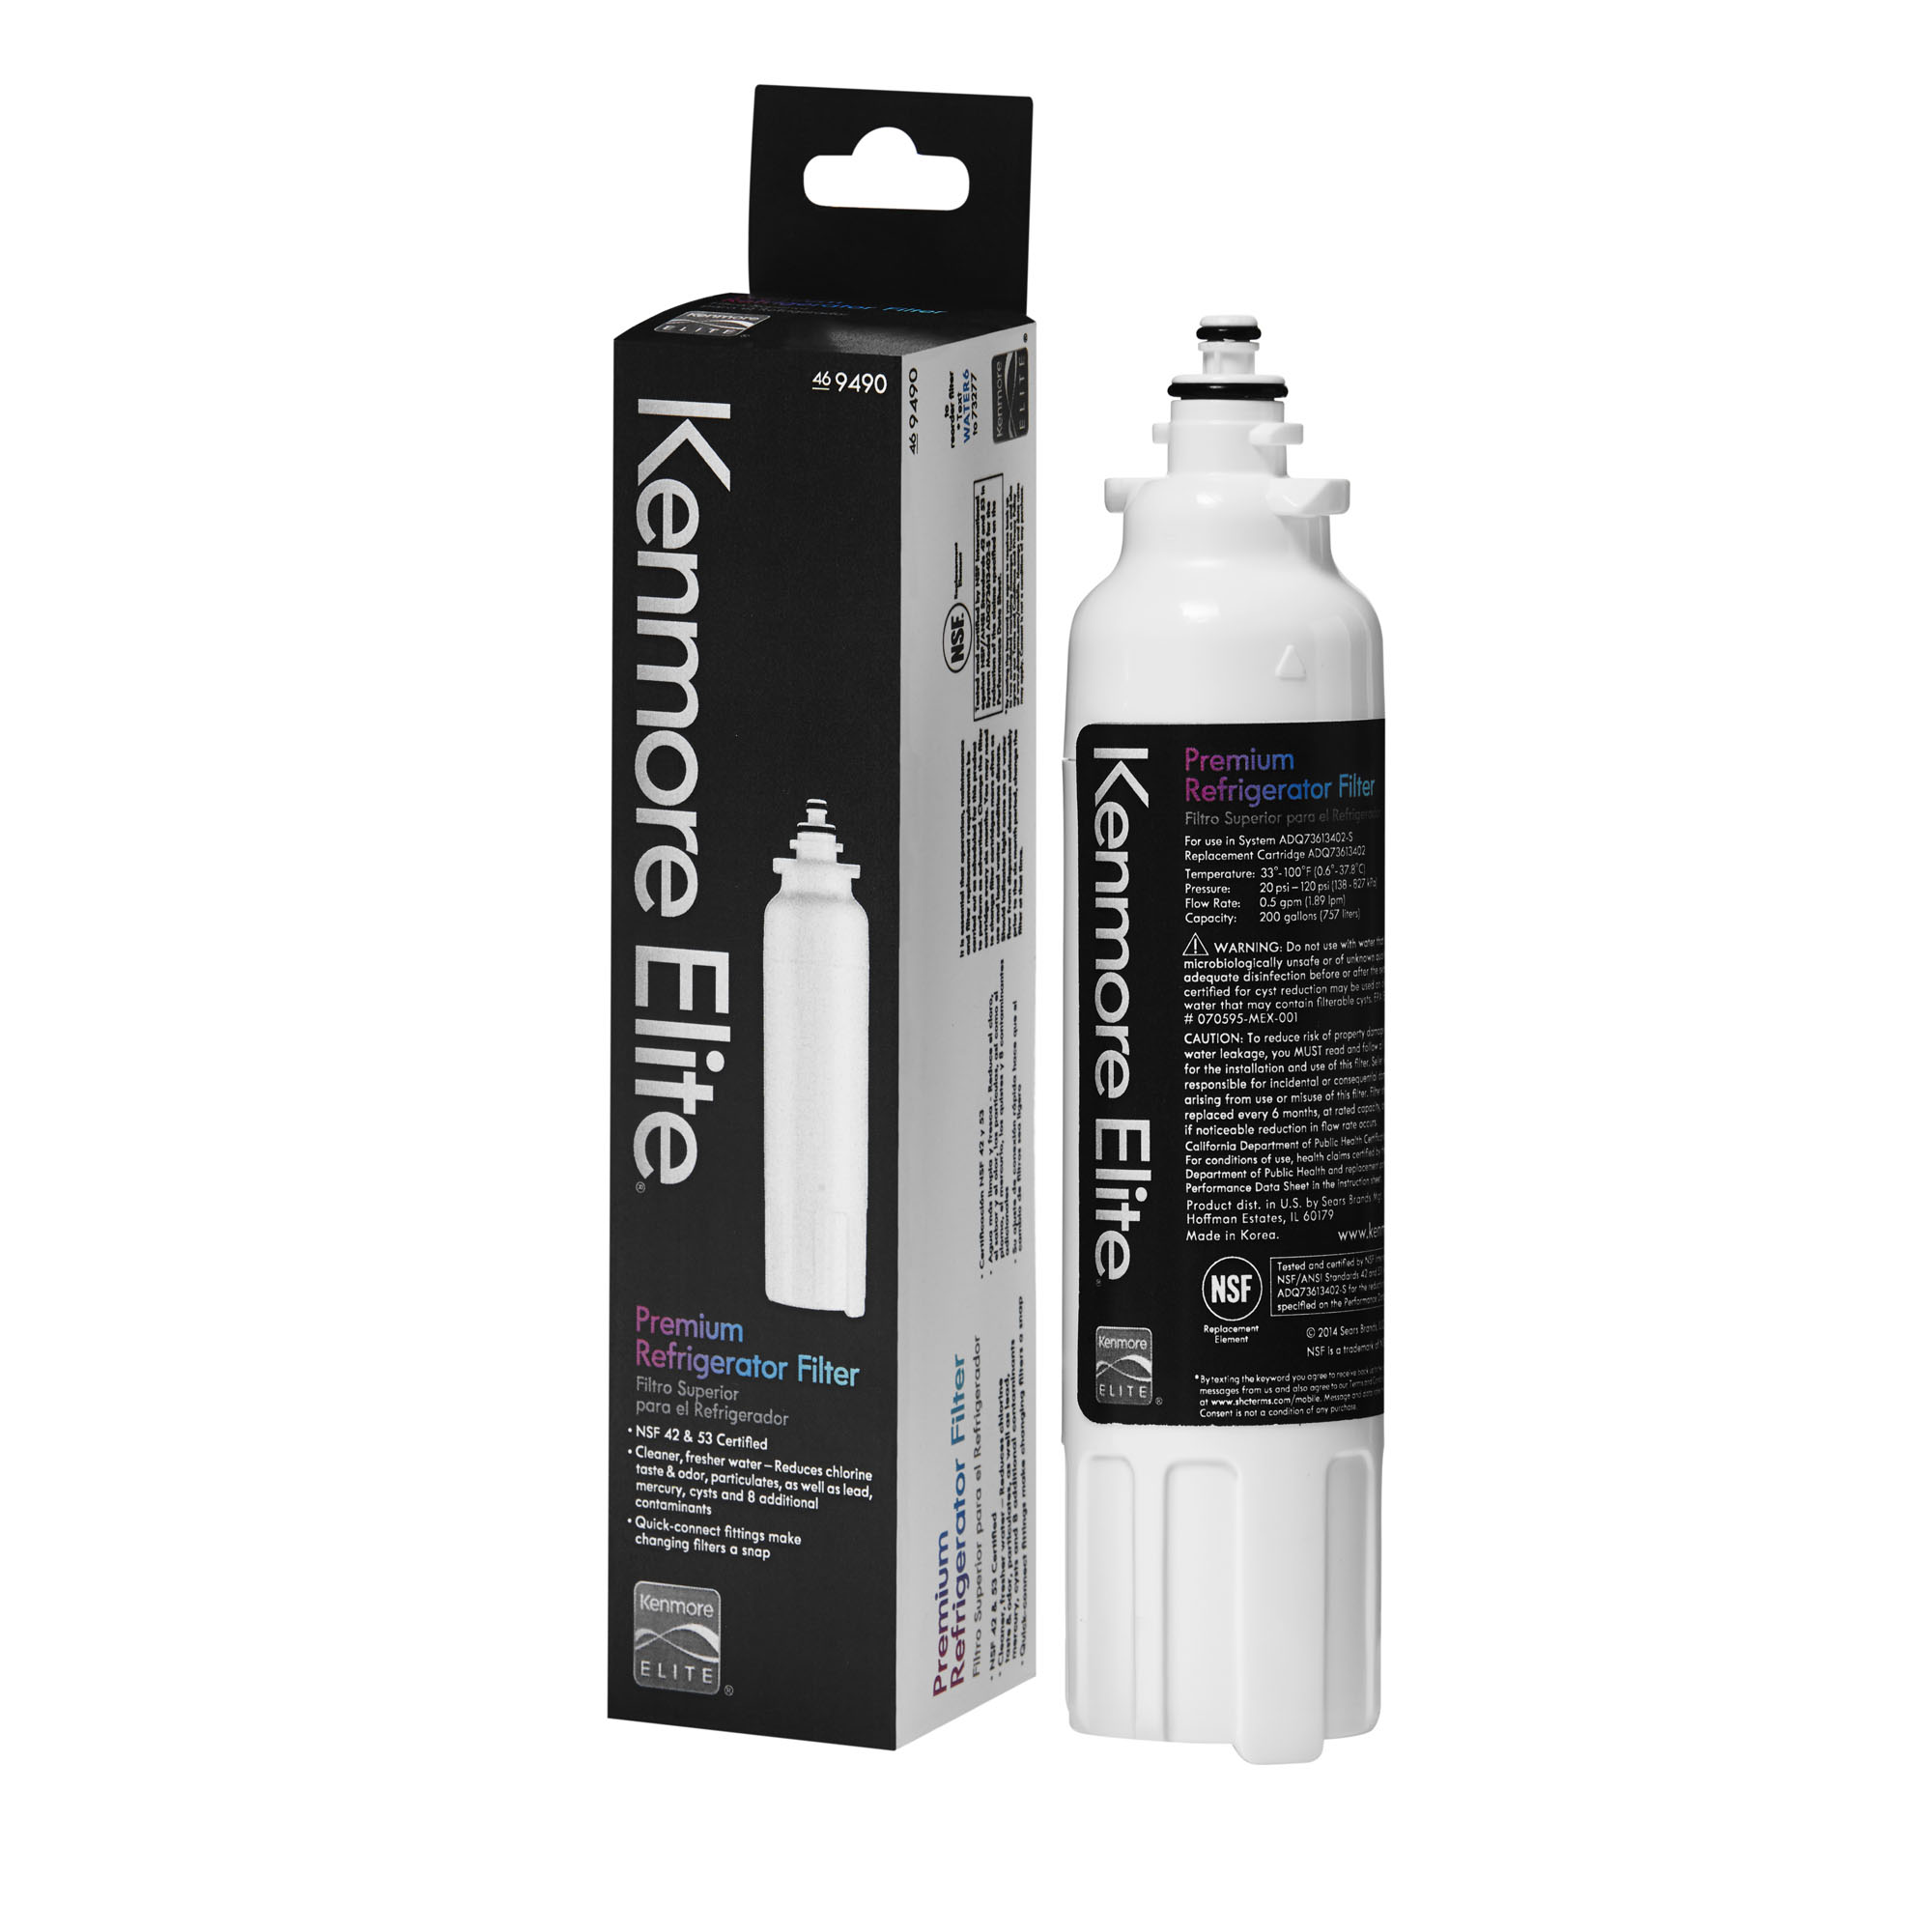 Kenmore Elite 9490 /ADQ73613402 200 gal. Water Filter